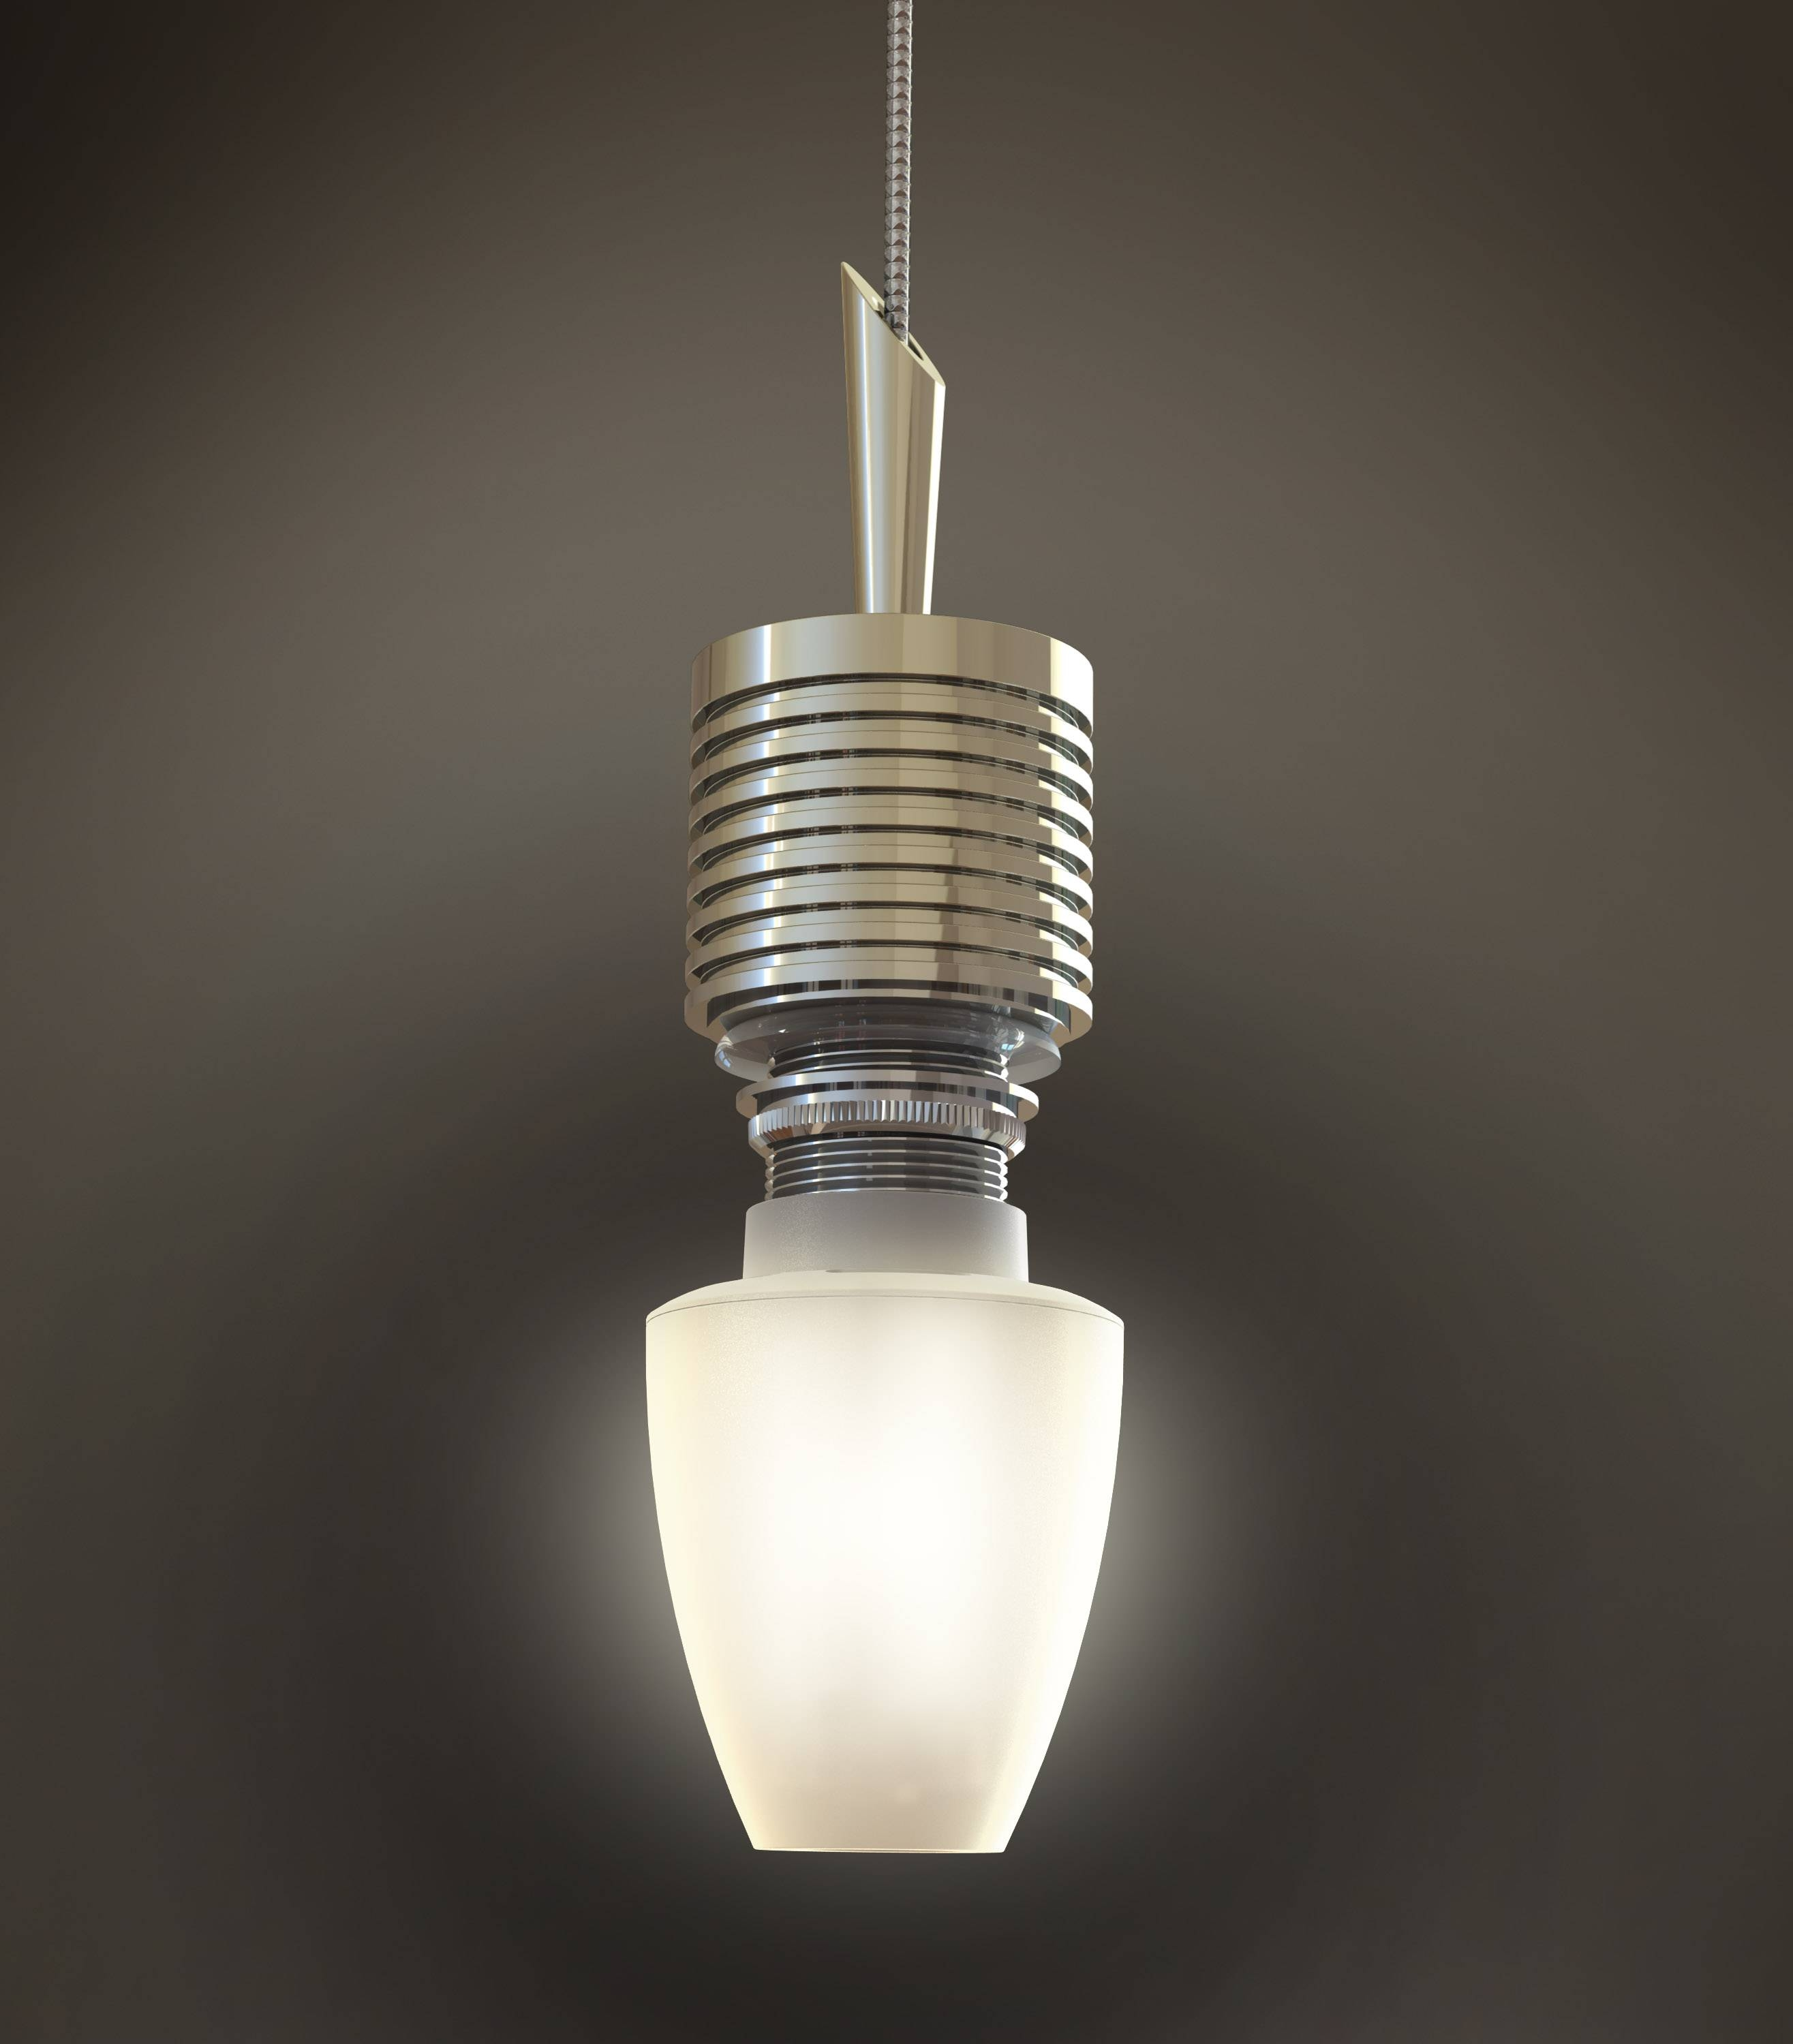 Industrial Pendant Lighting Canada | Roselawnlutheran pertaining to Industrial Pendant Lighting Canada (Image 6 of 15)